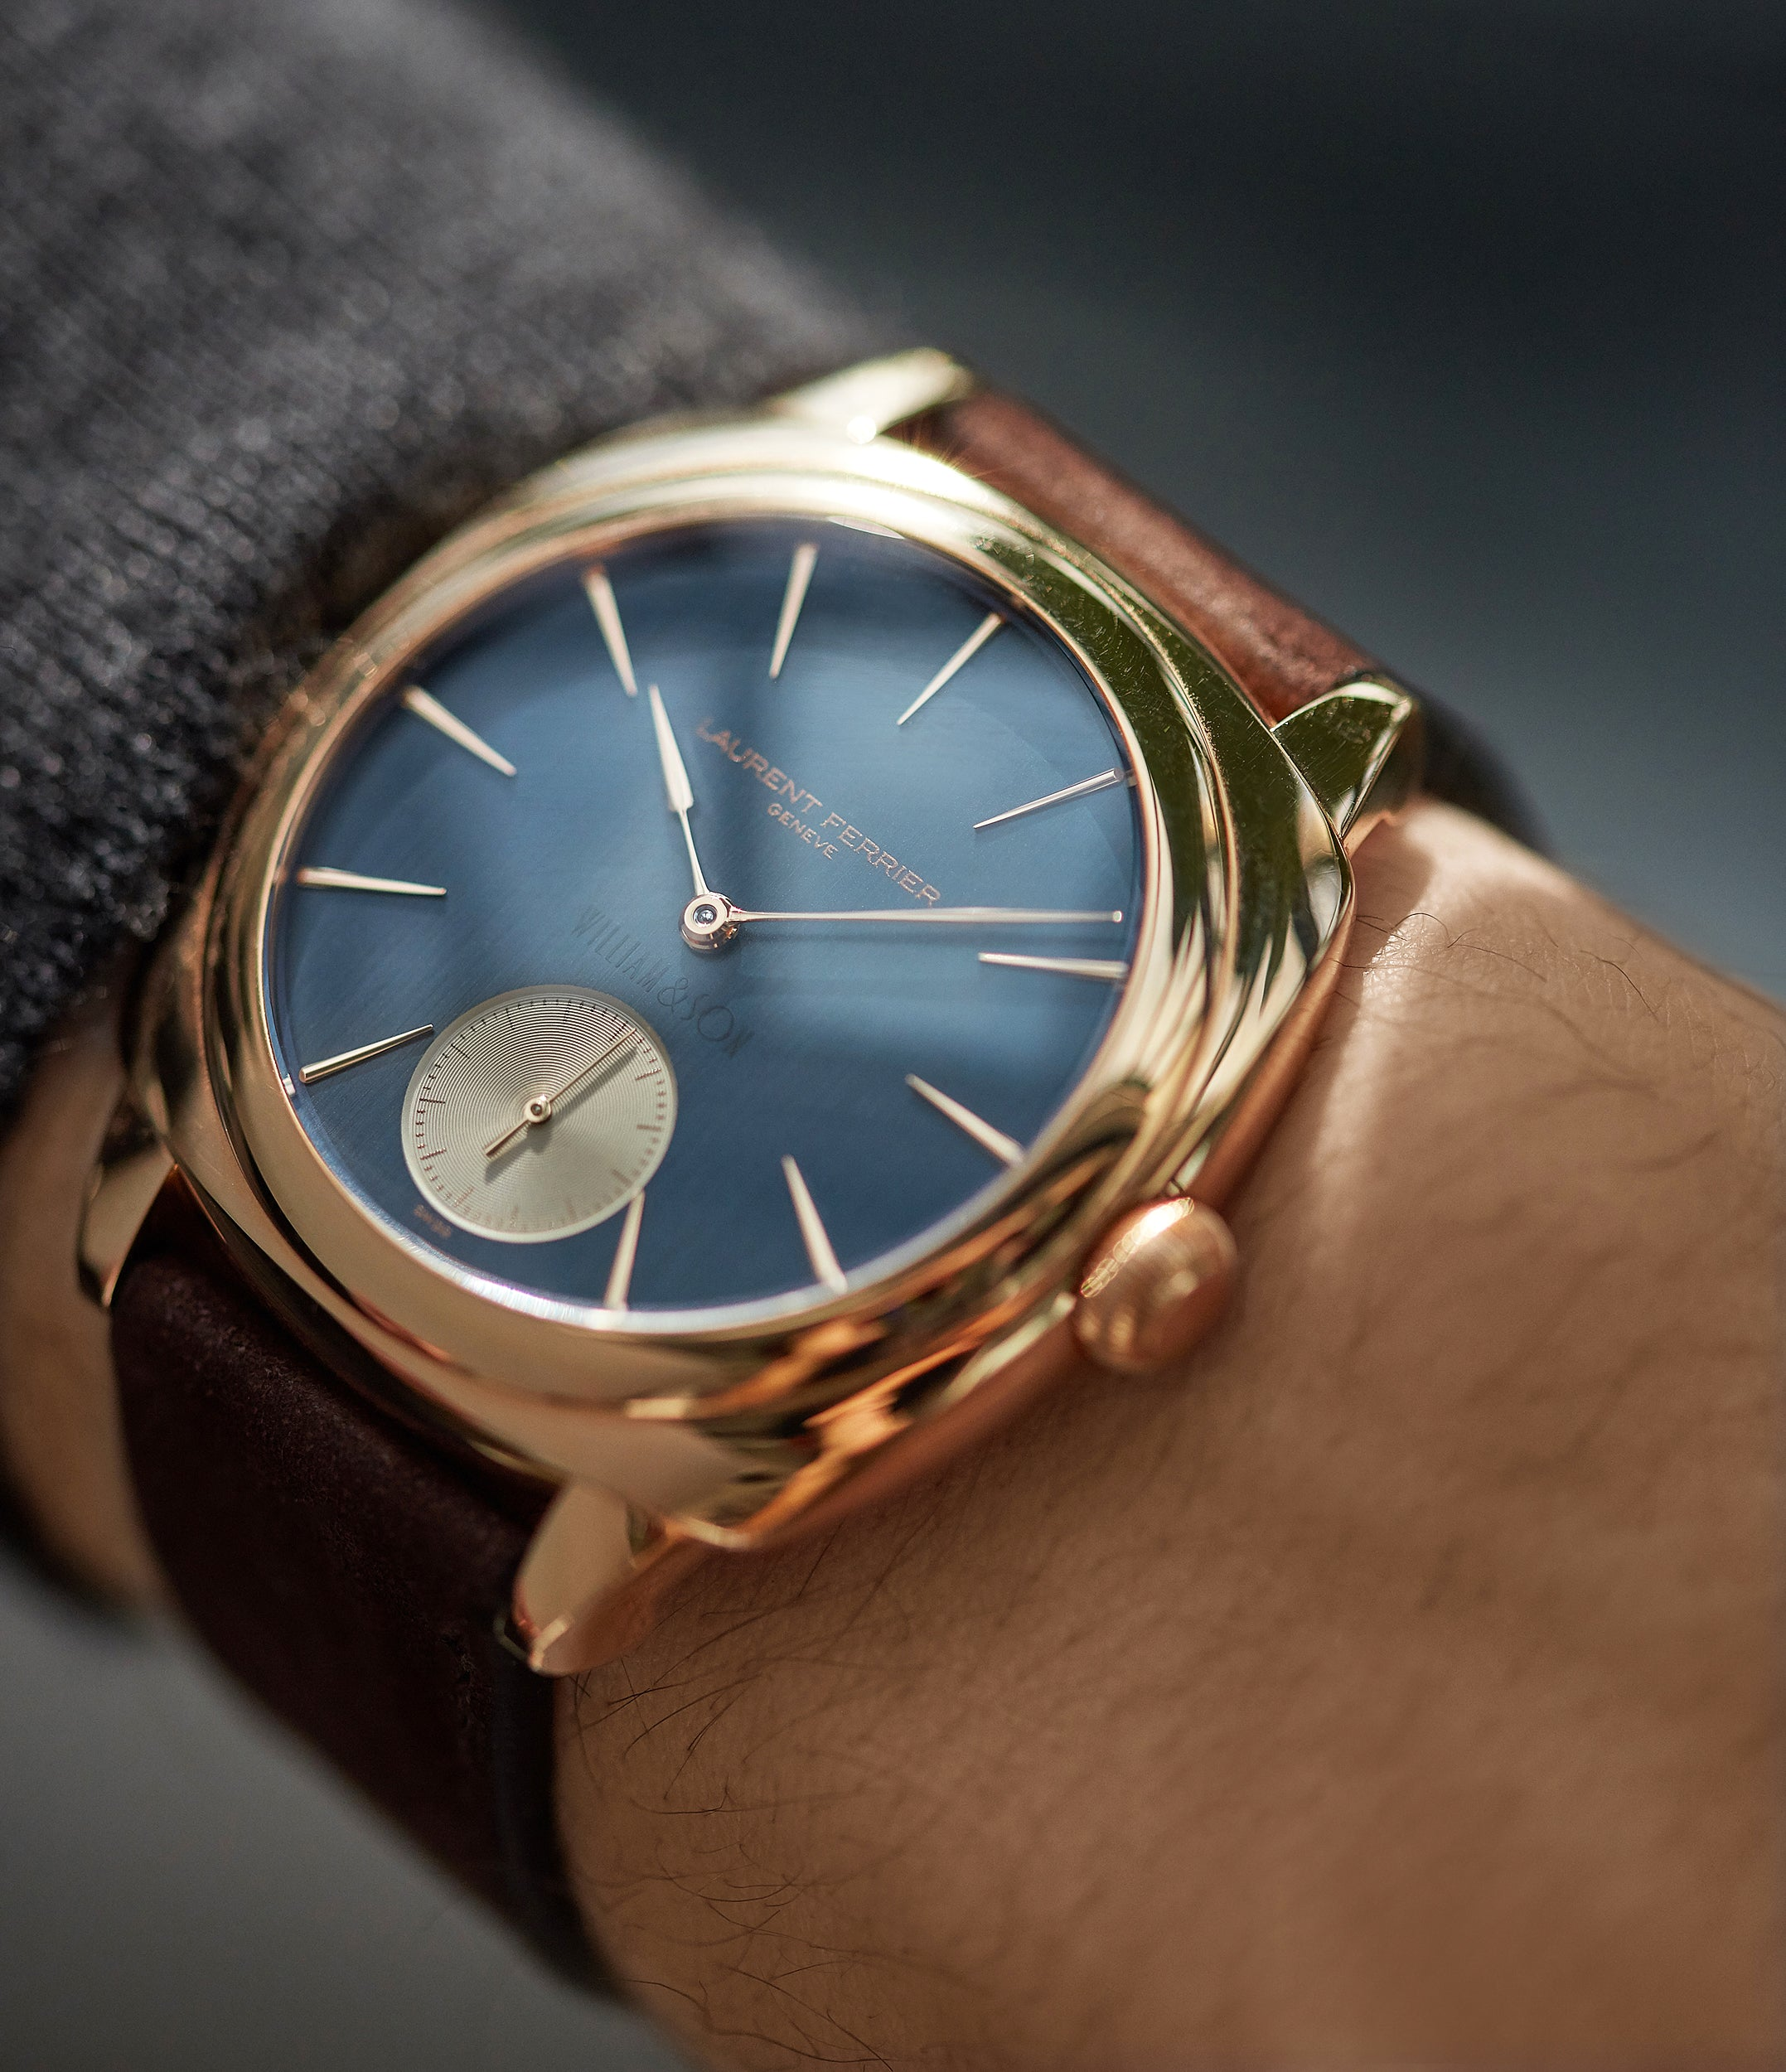 buy Laurent Ferrier Galet Square Micro-rotor blue dial by  William & Son rose gold rare luxury dress watch for sale online at A Collected Man London UK specialist and approved reseller of rare independent watchmakers